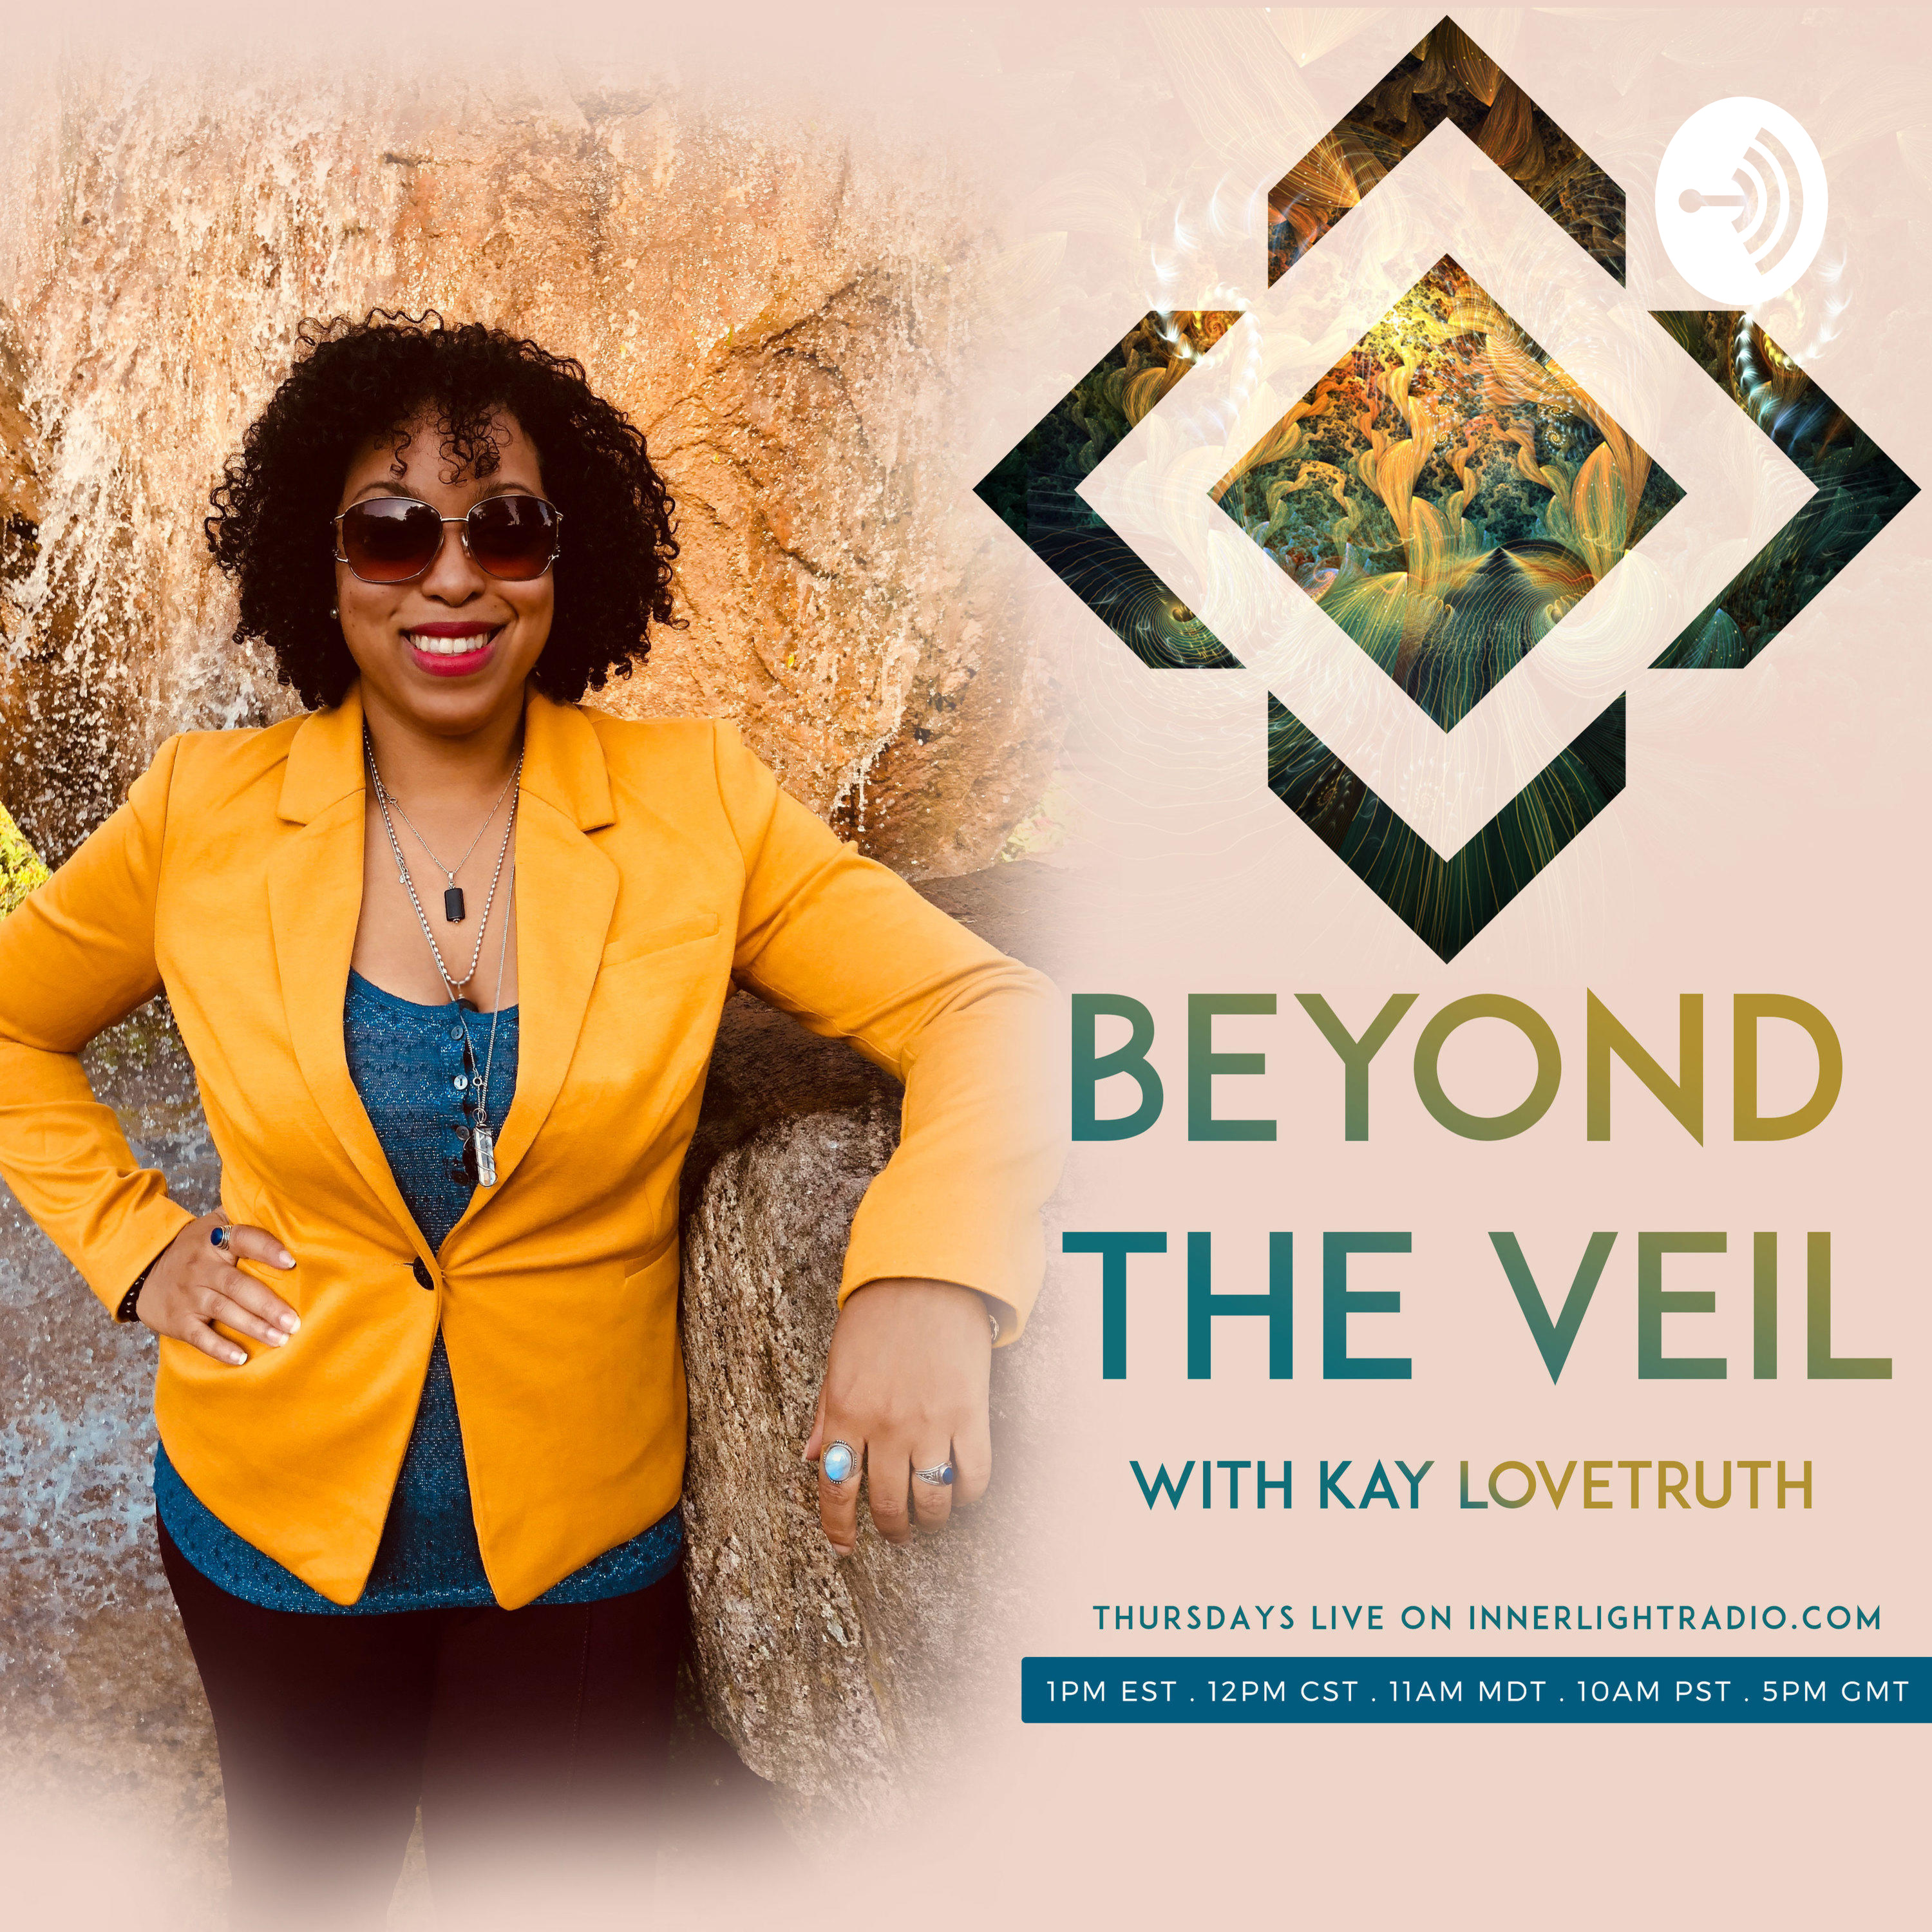 Beyond The Veil with Host Kay LoveTruth | Listen via Stitcher for